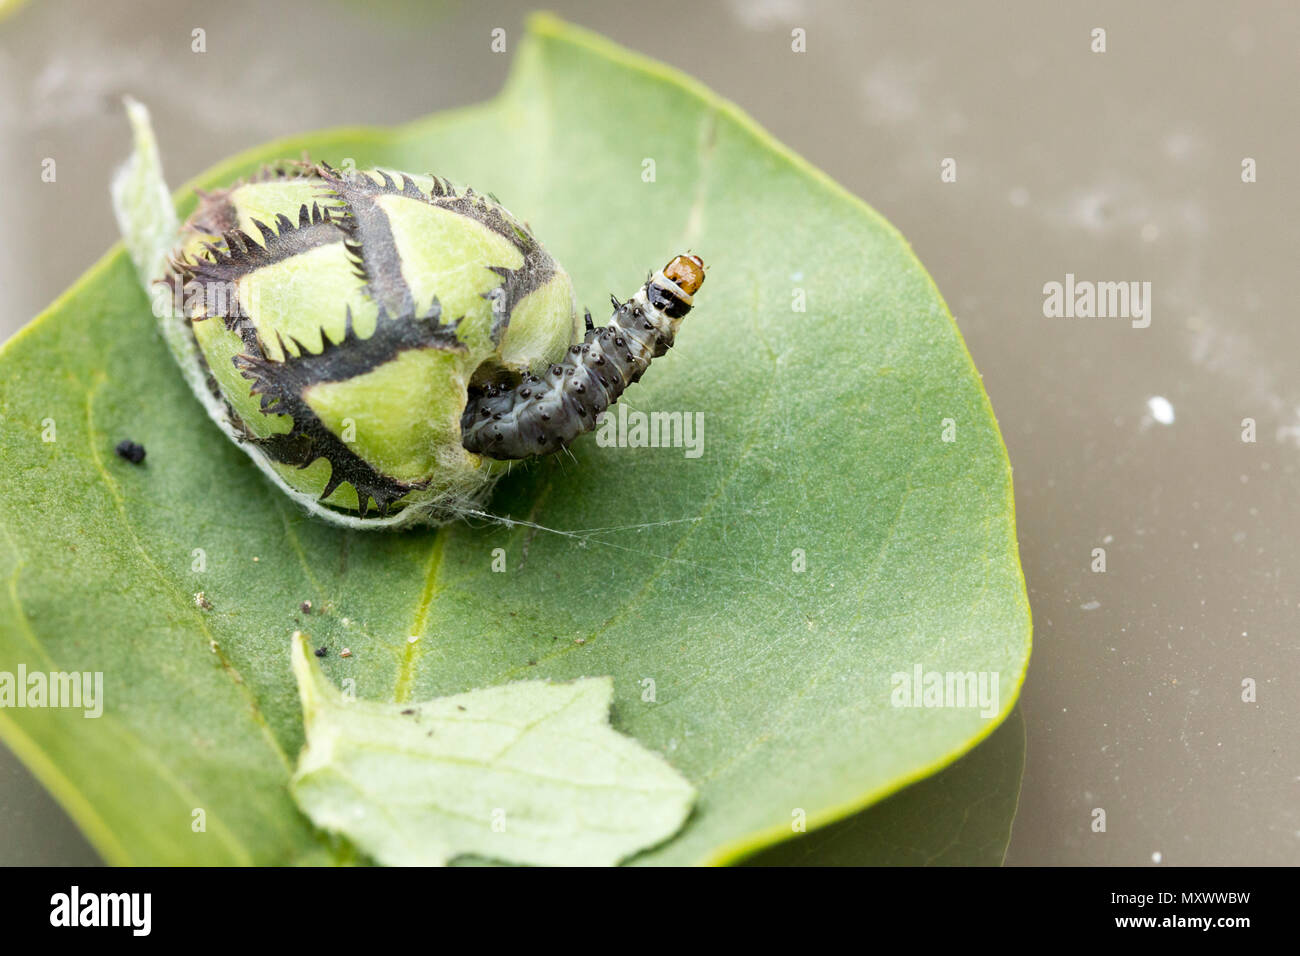 Caterpillar emerged from cornflower bud used silk threads to secure leaves and bud together caterpillar came out secured its home then went inside - Stock Image